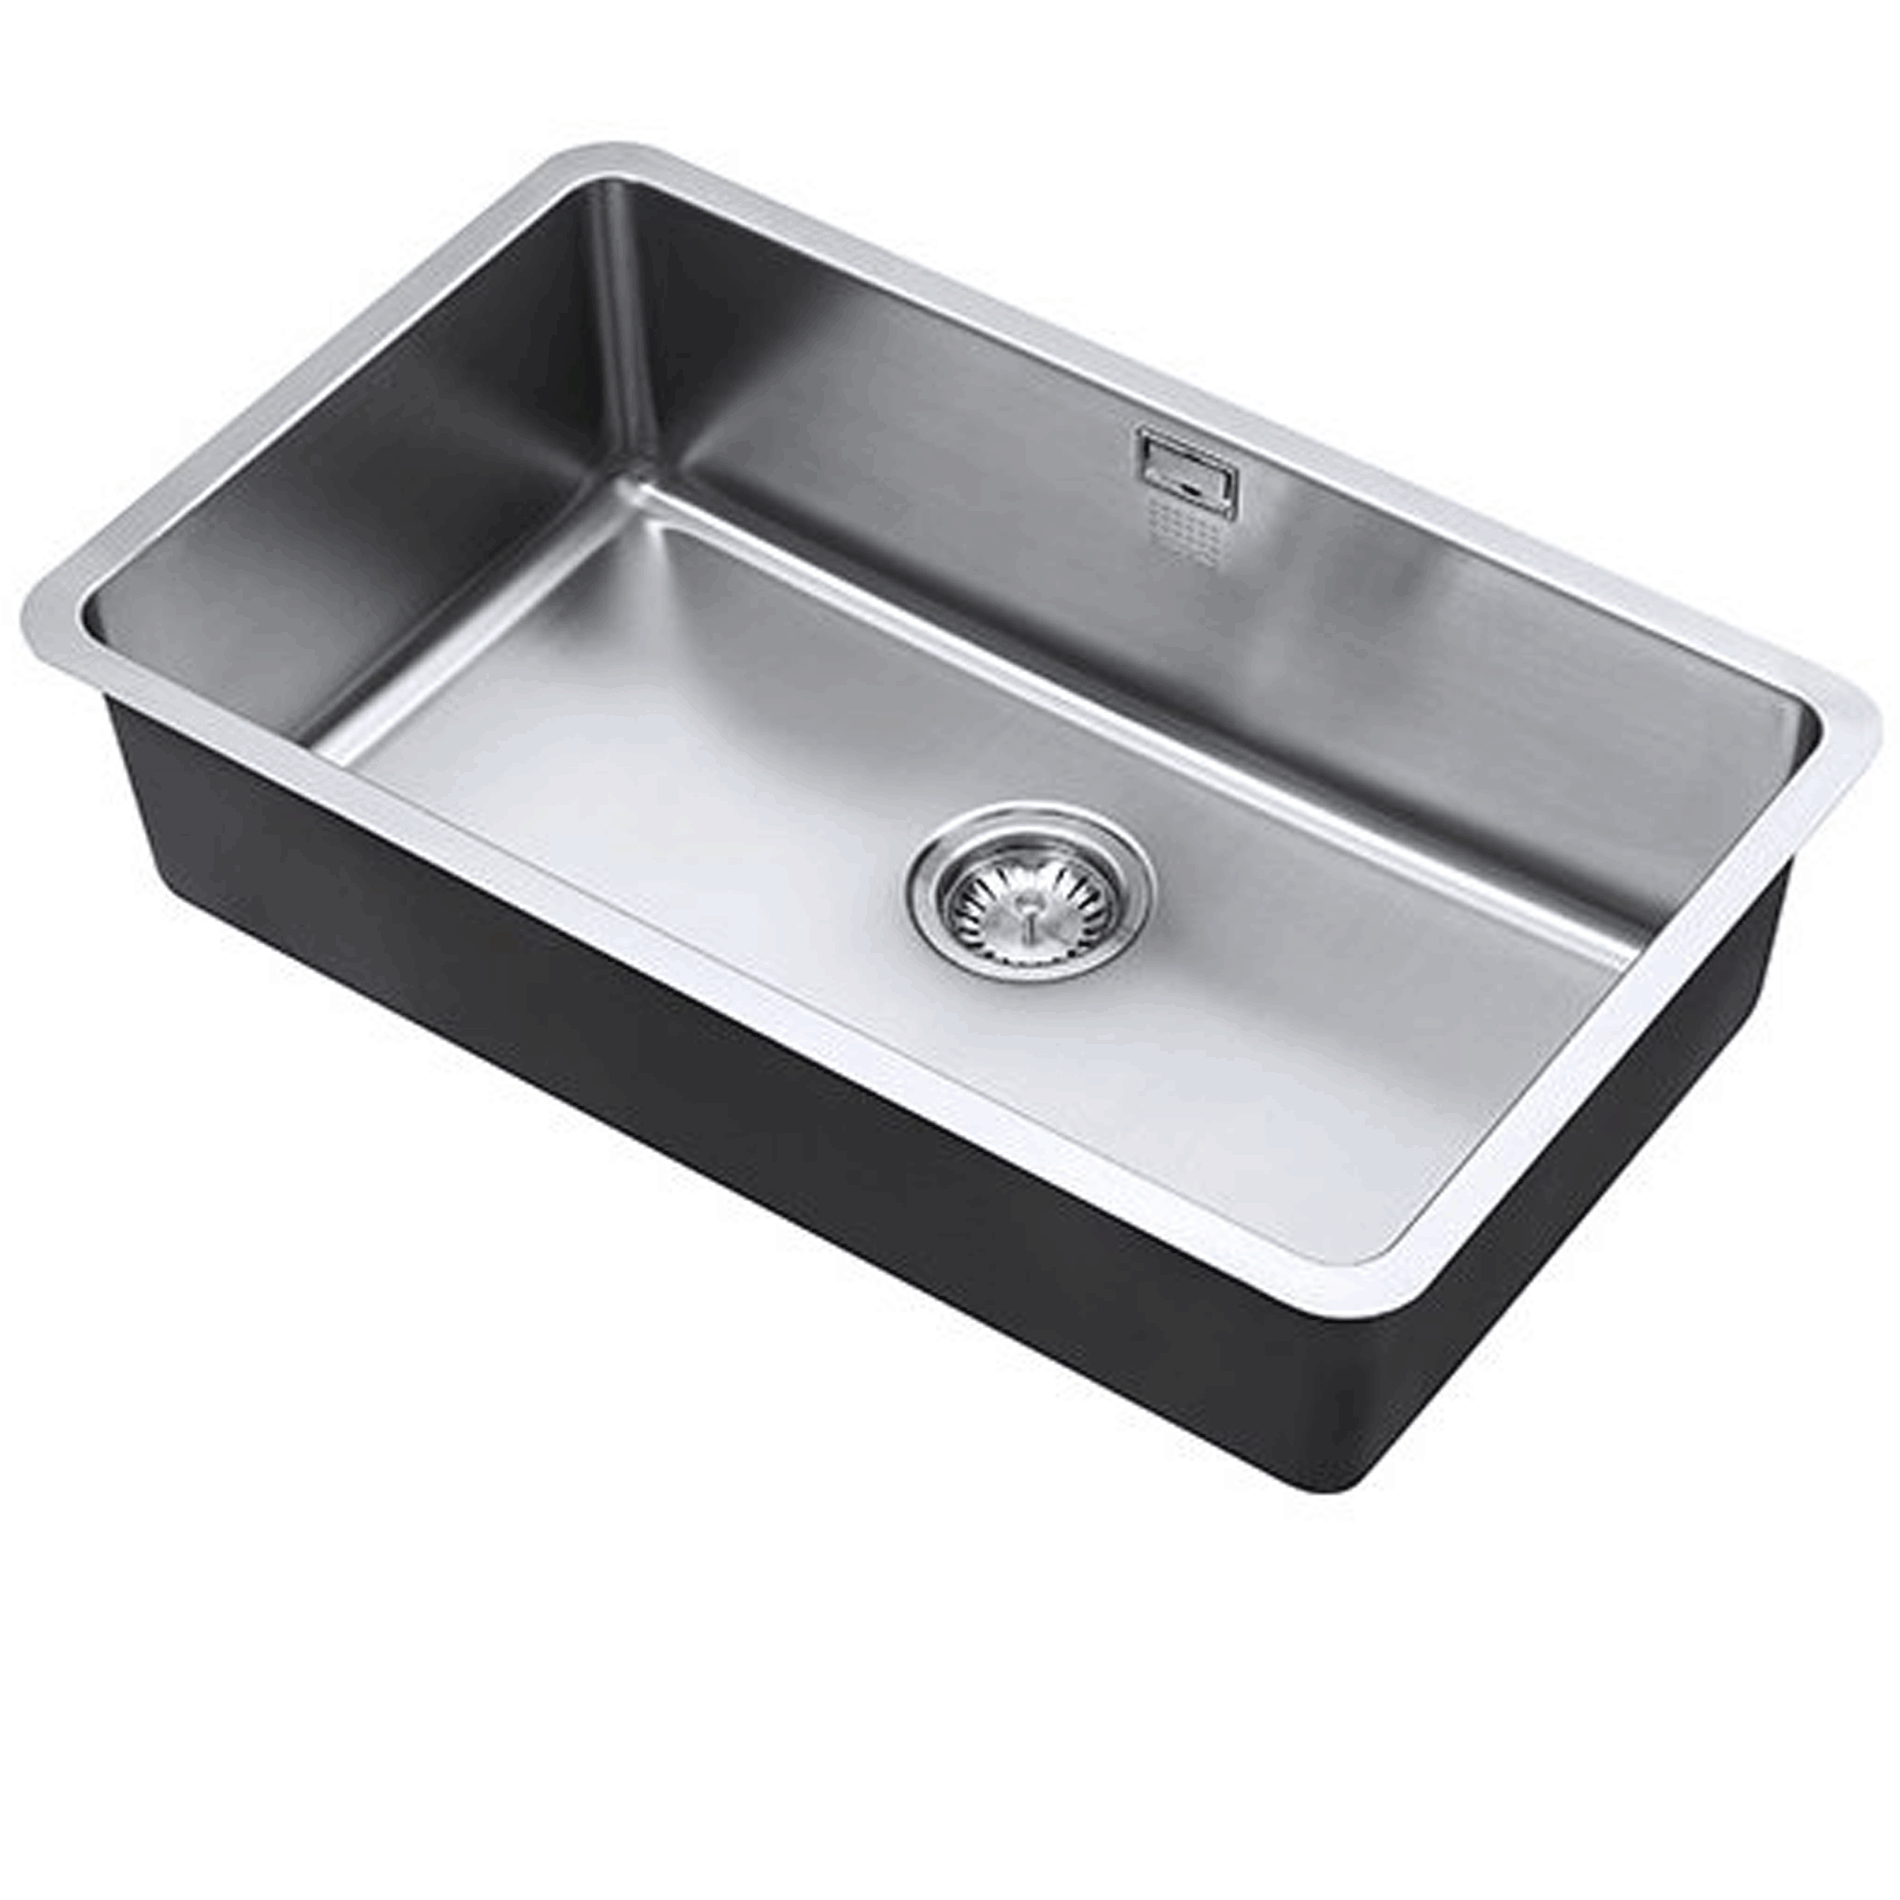 Picture of Luxsoplusuno025 700U Stainless Steel Sink